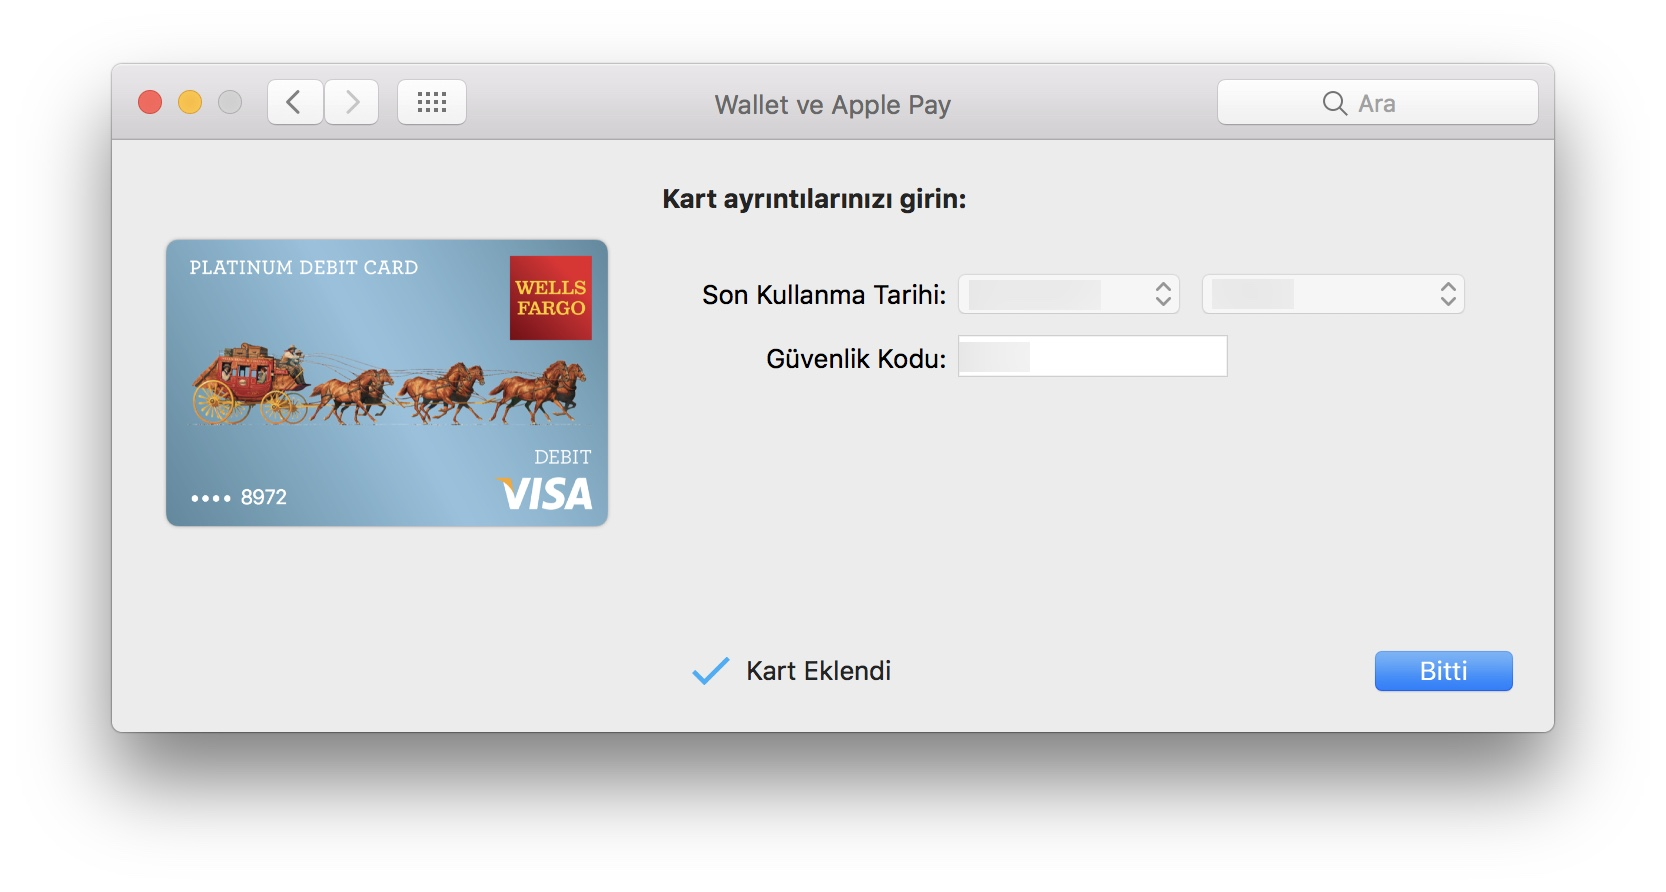 sihirli-elma-mac-apple-pay-7.jpg